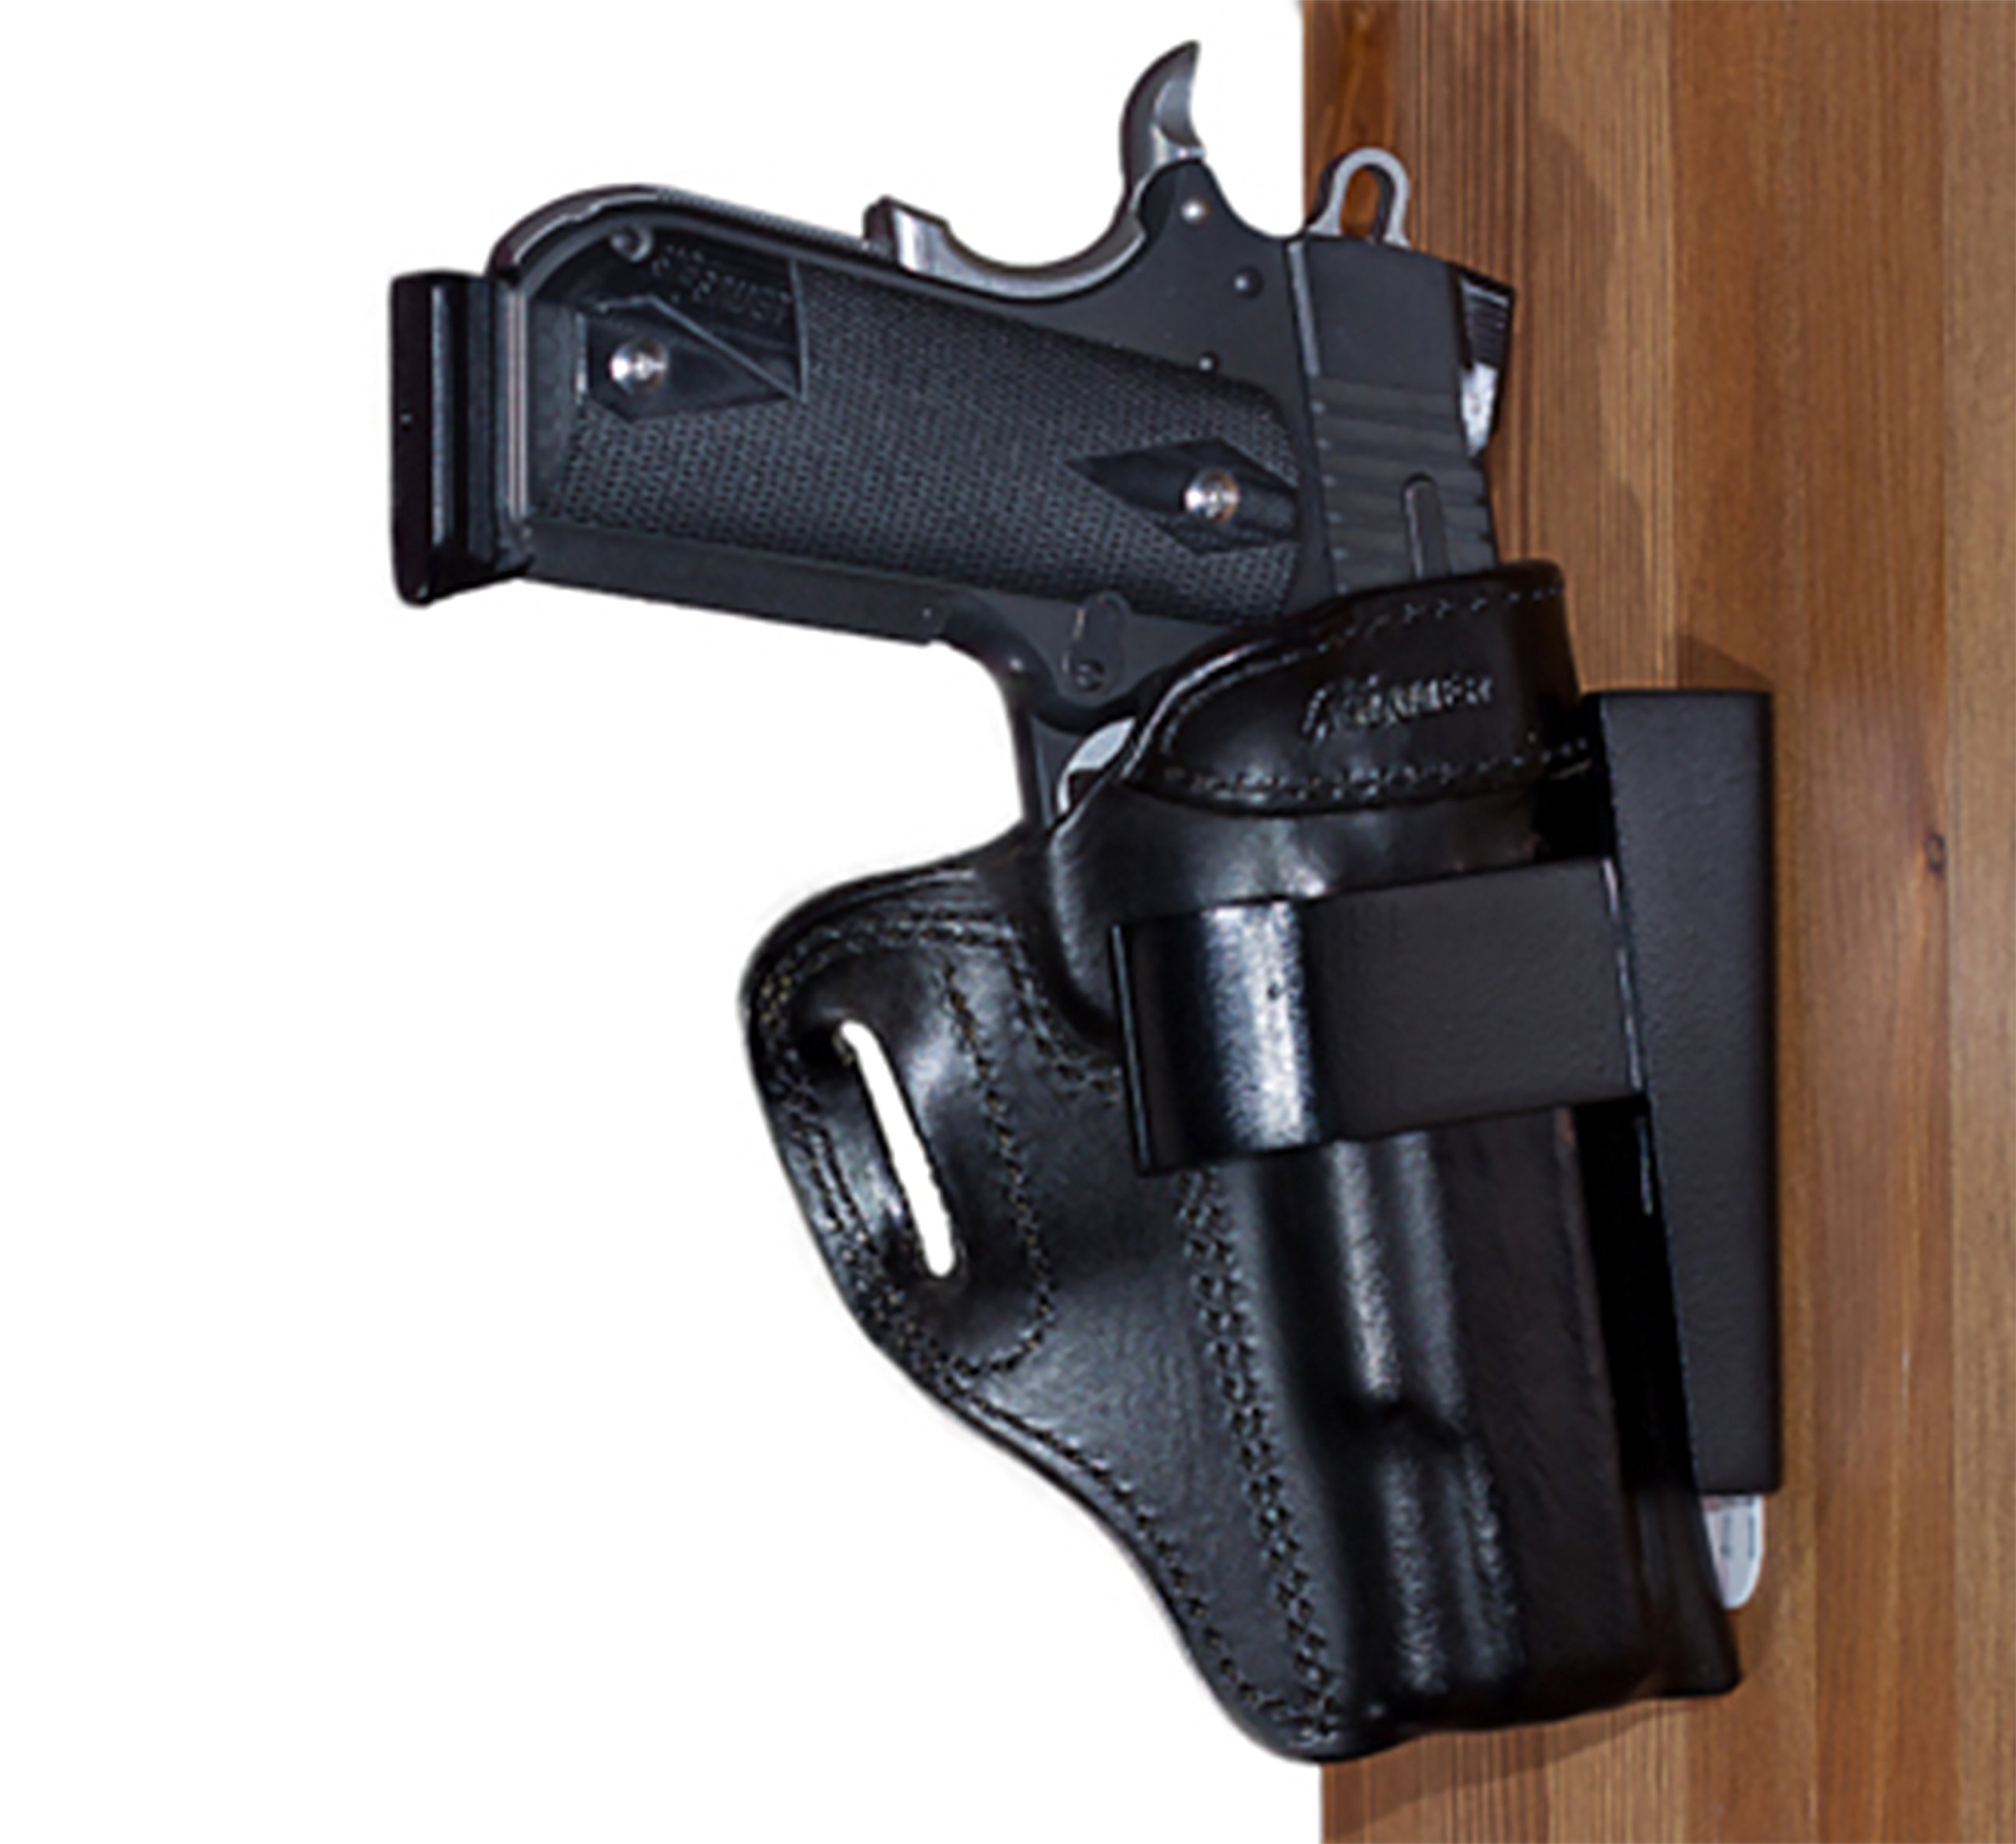 By My Side Holster Standard Holster Rest for Vehicle, Under Desk or Bedside by By My Side Holster®